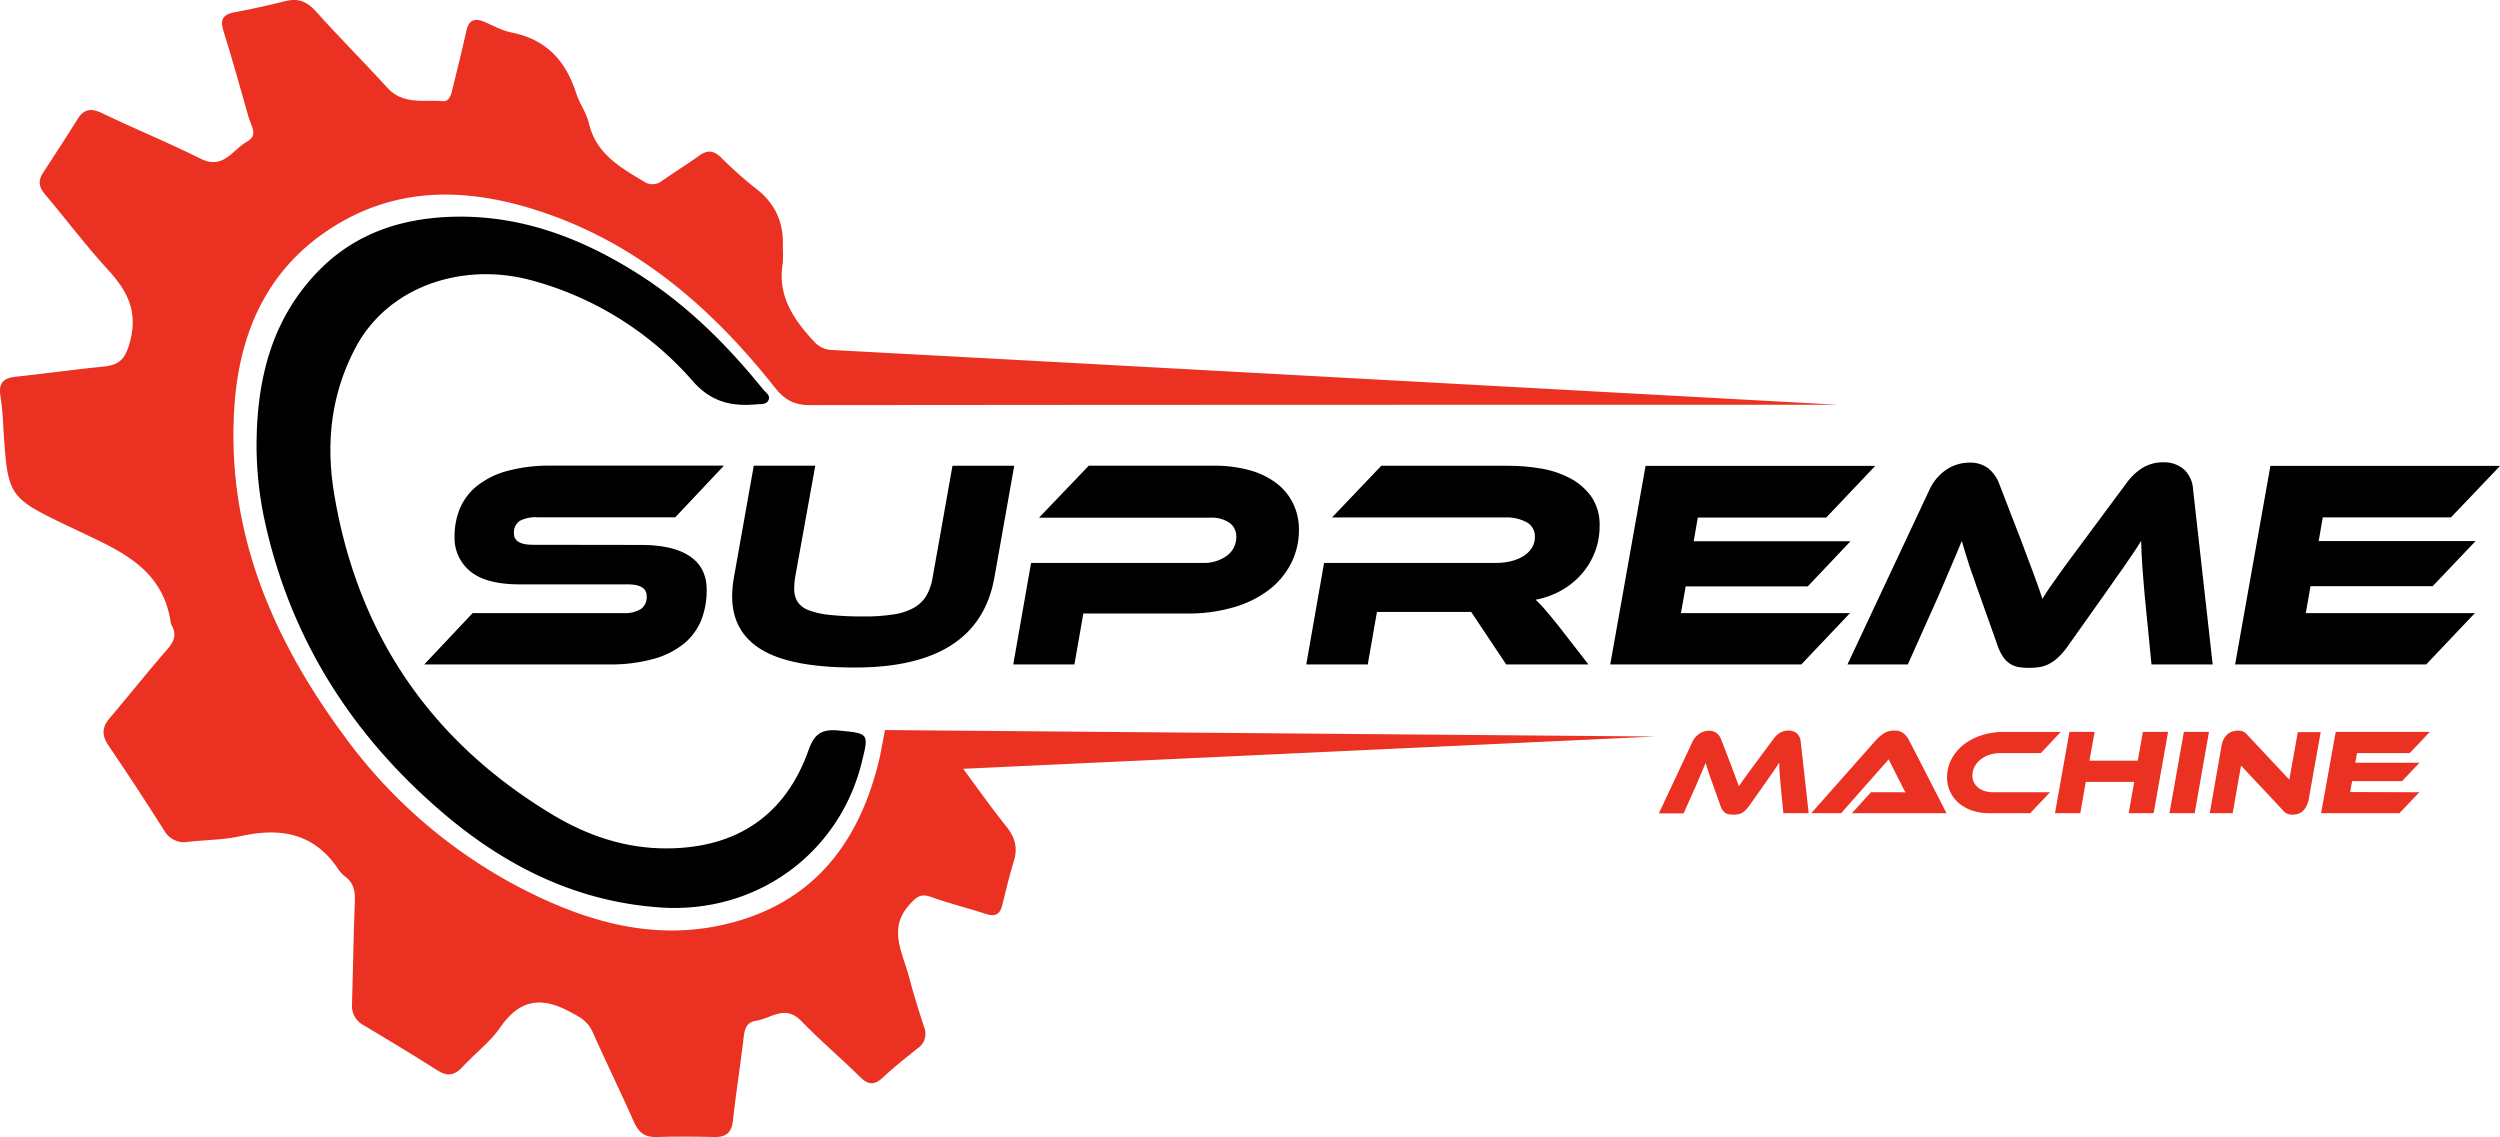 Supreme Machine Logo